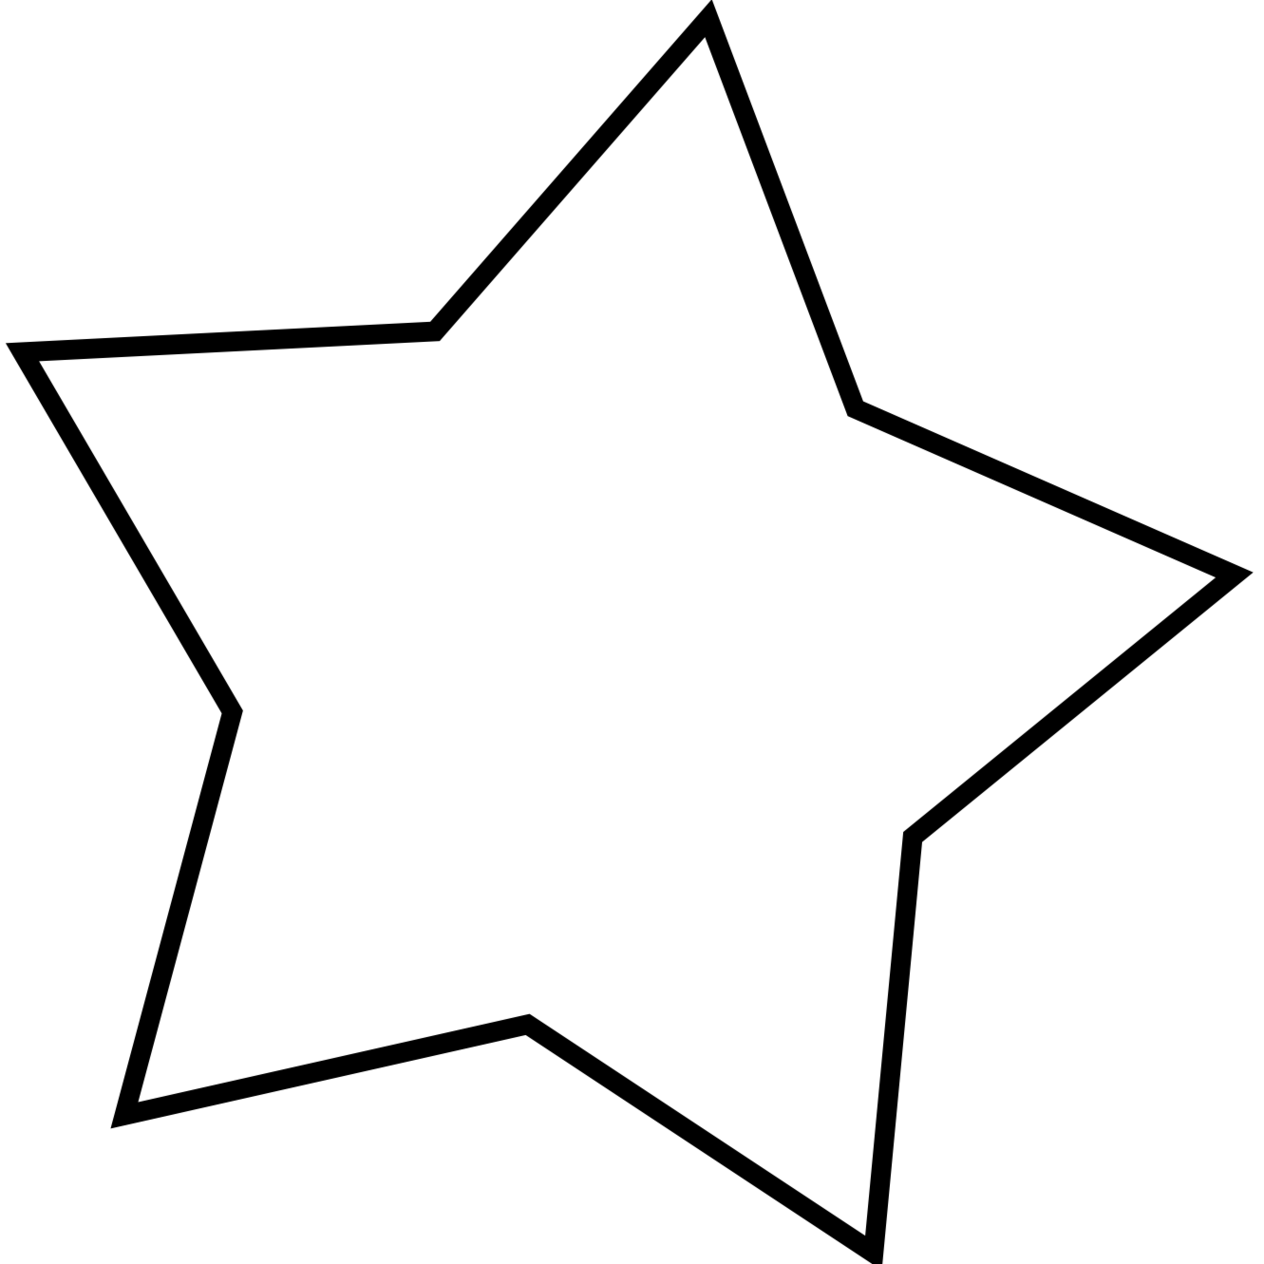 Clipart star black and white picture transparent library Star clipart png black and white picture transparent library